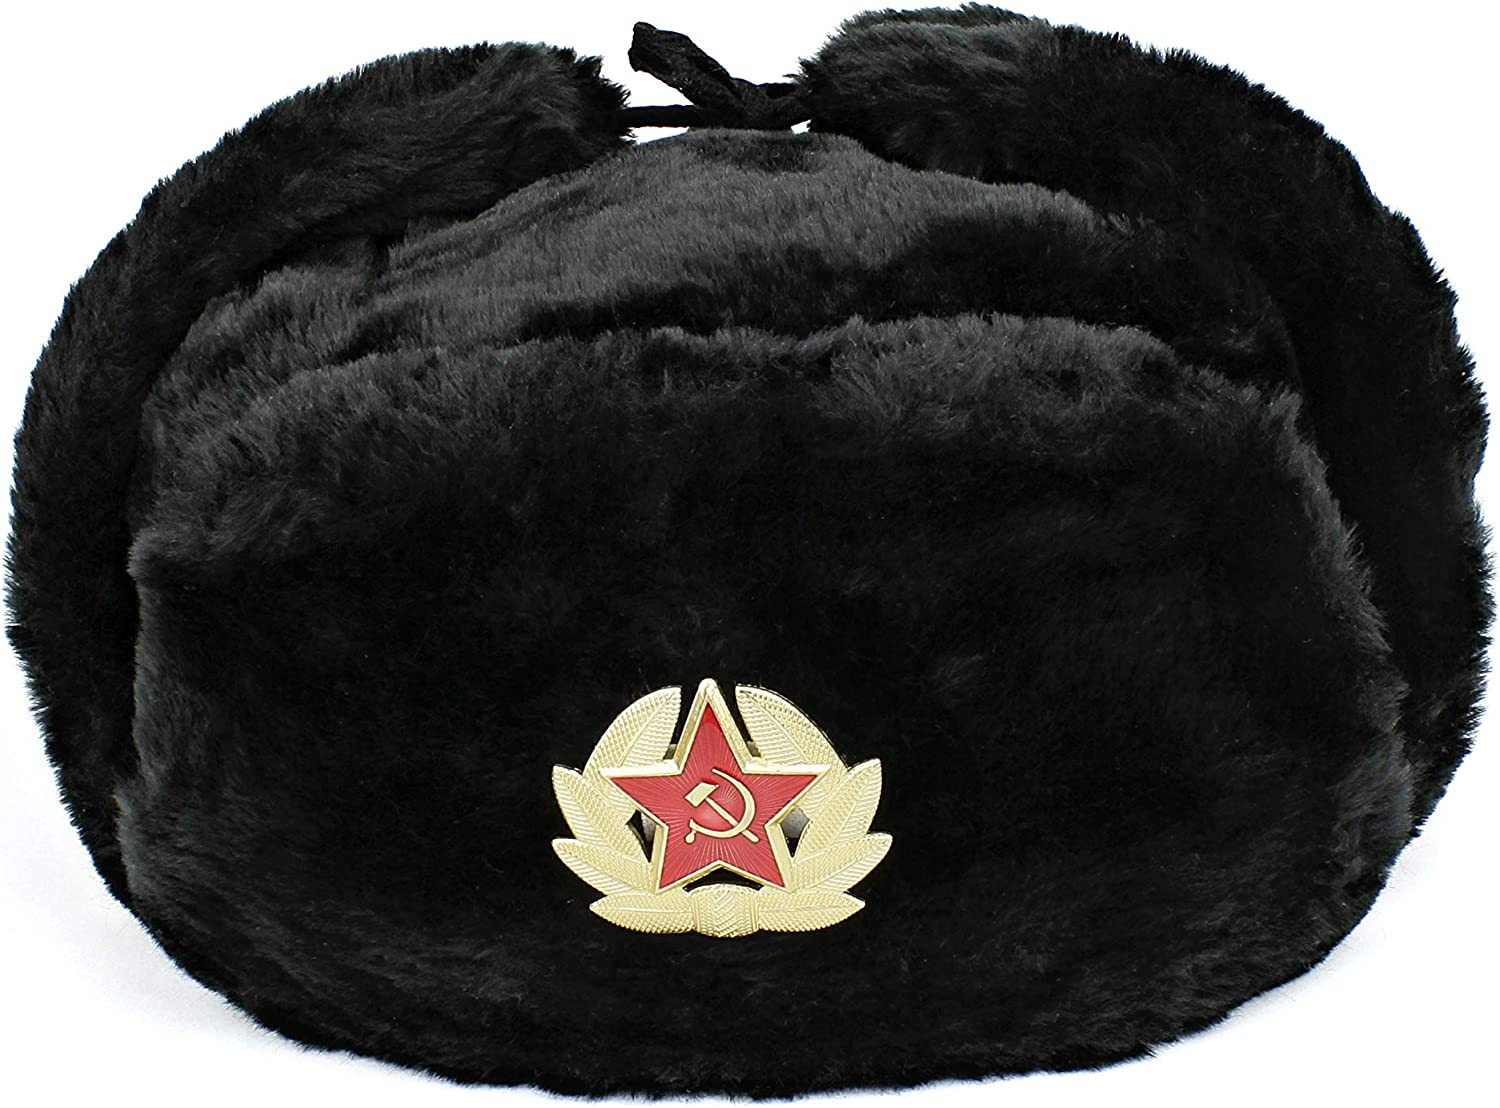 Heka Naturals Ushanka Russian Safety and trust Hat Ear Flaps with Badge Cheap mail order sales